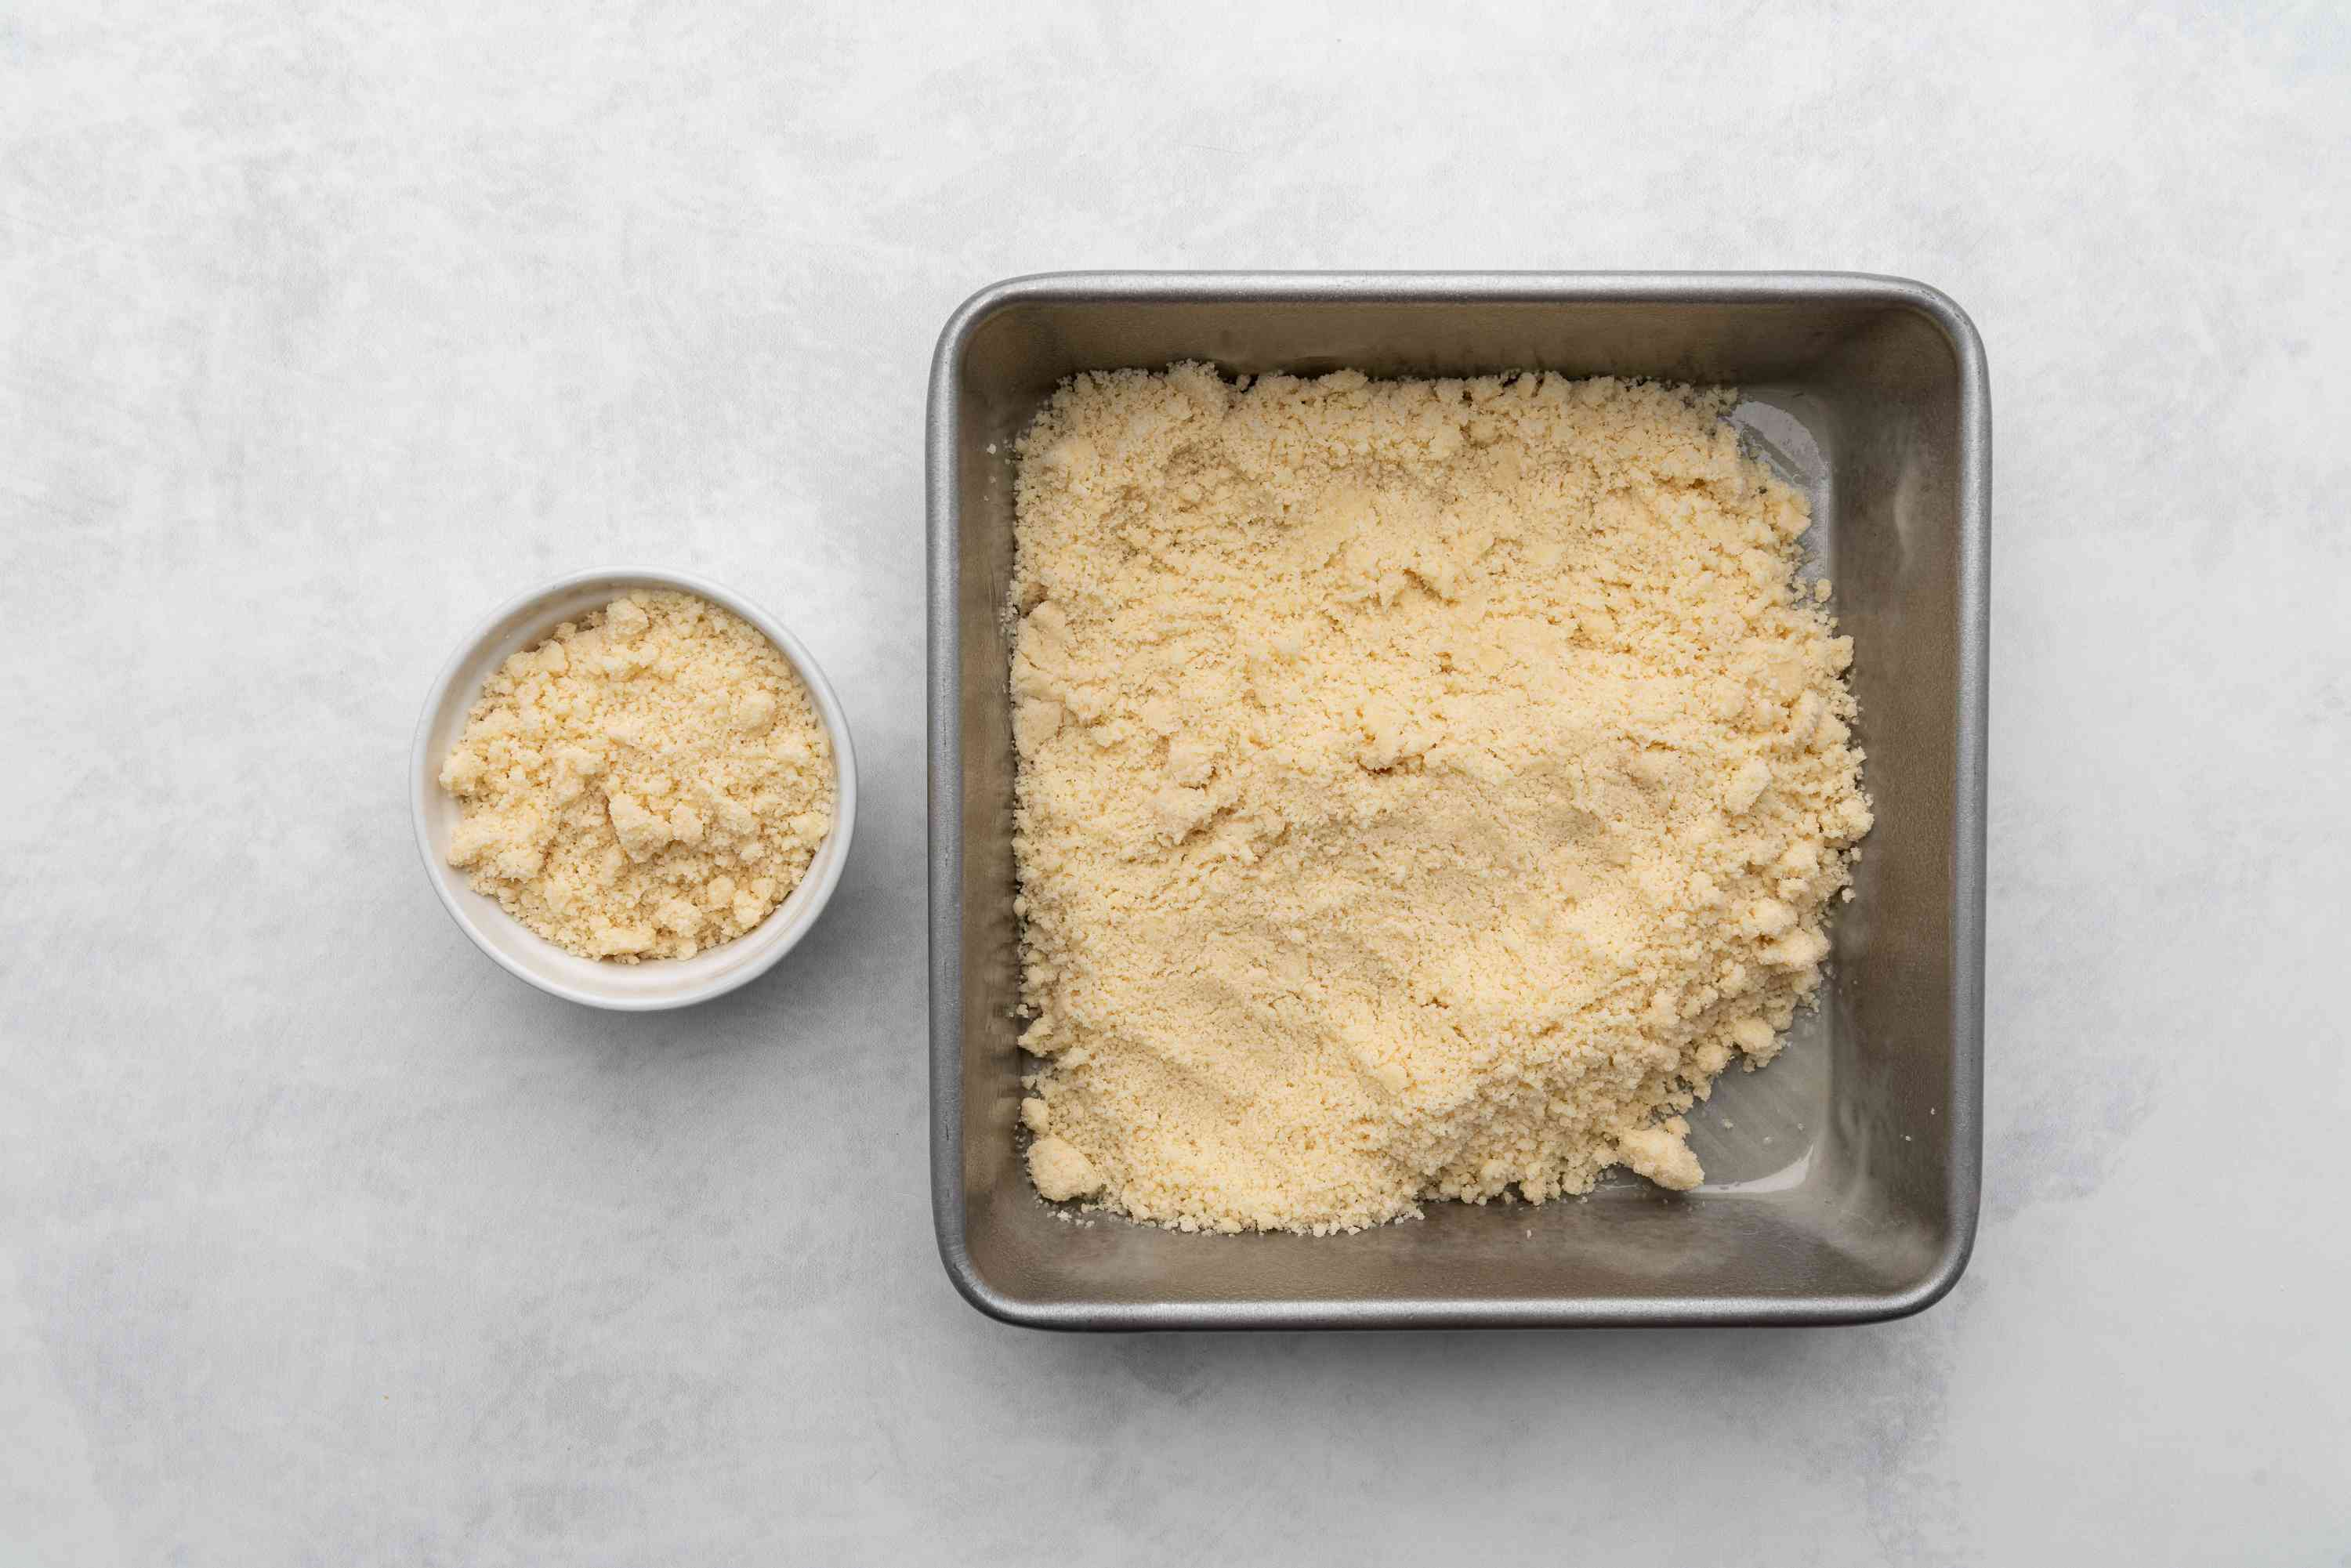 reserved flour mixture in small bowl, remaining flour mixture being pressed into pan